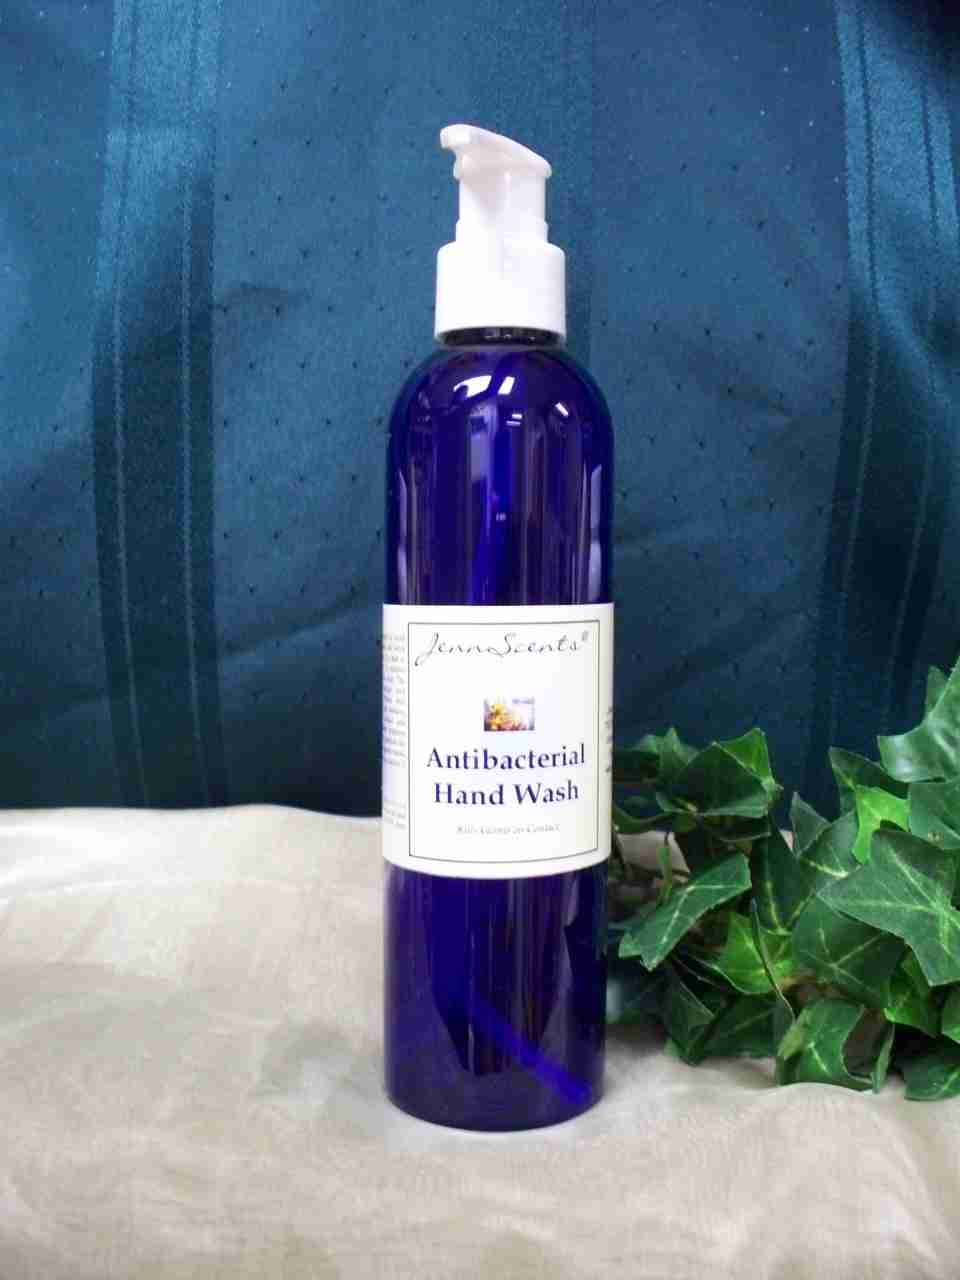 Antibacterial Hand Wash, 4oz.